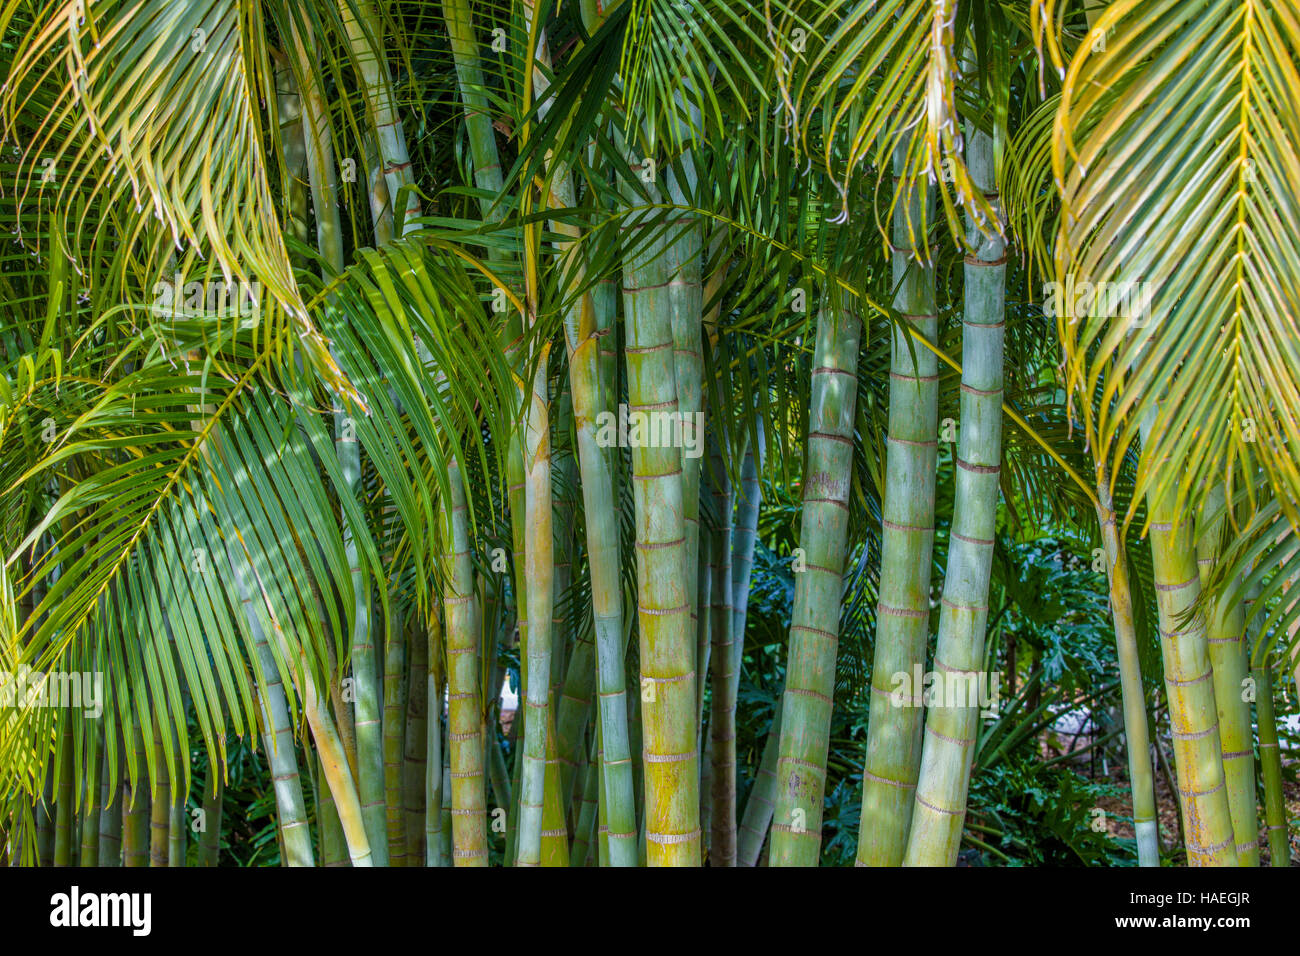 Yellow Palm Areca Palm Chrysalidocarpus Lutescens Areca Palm Dypsis Lutescens Also Known As Bamboo Palm